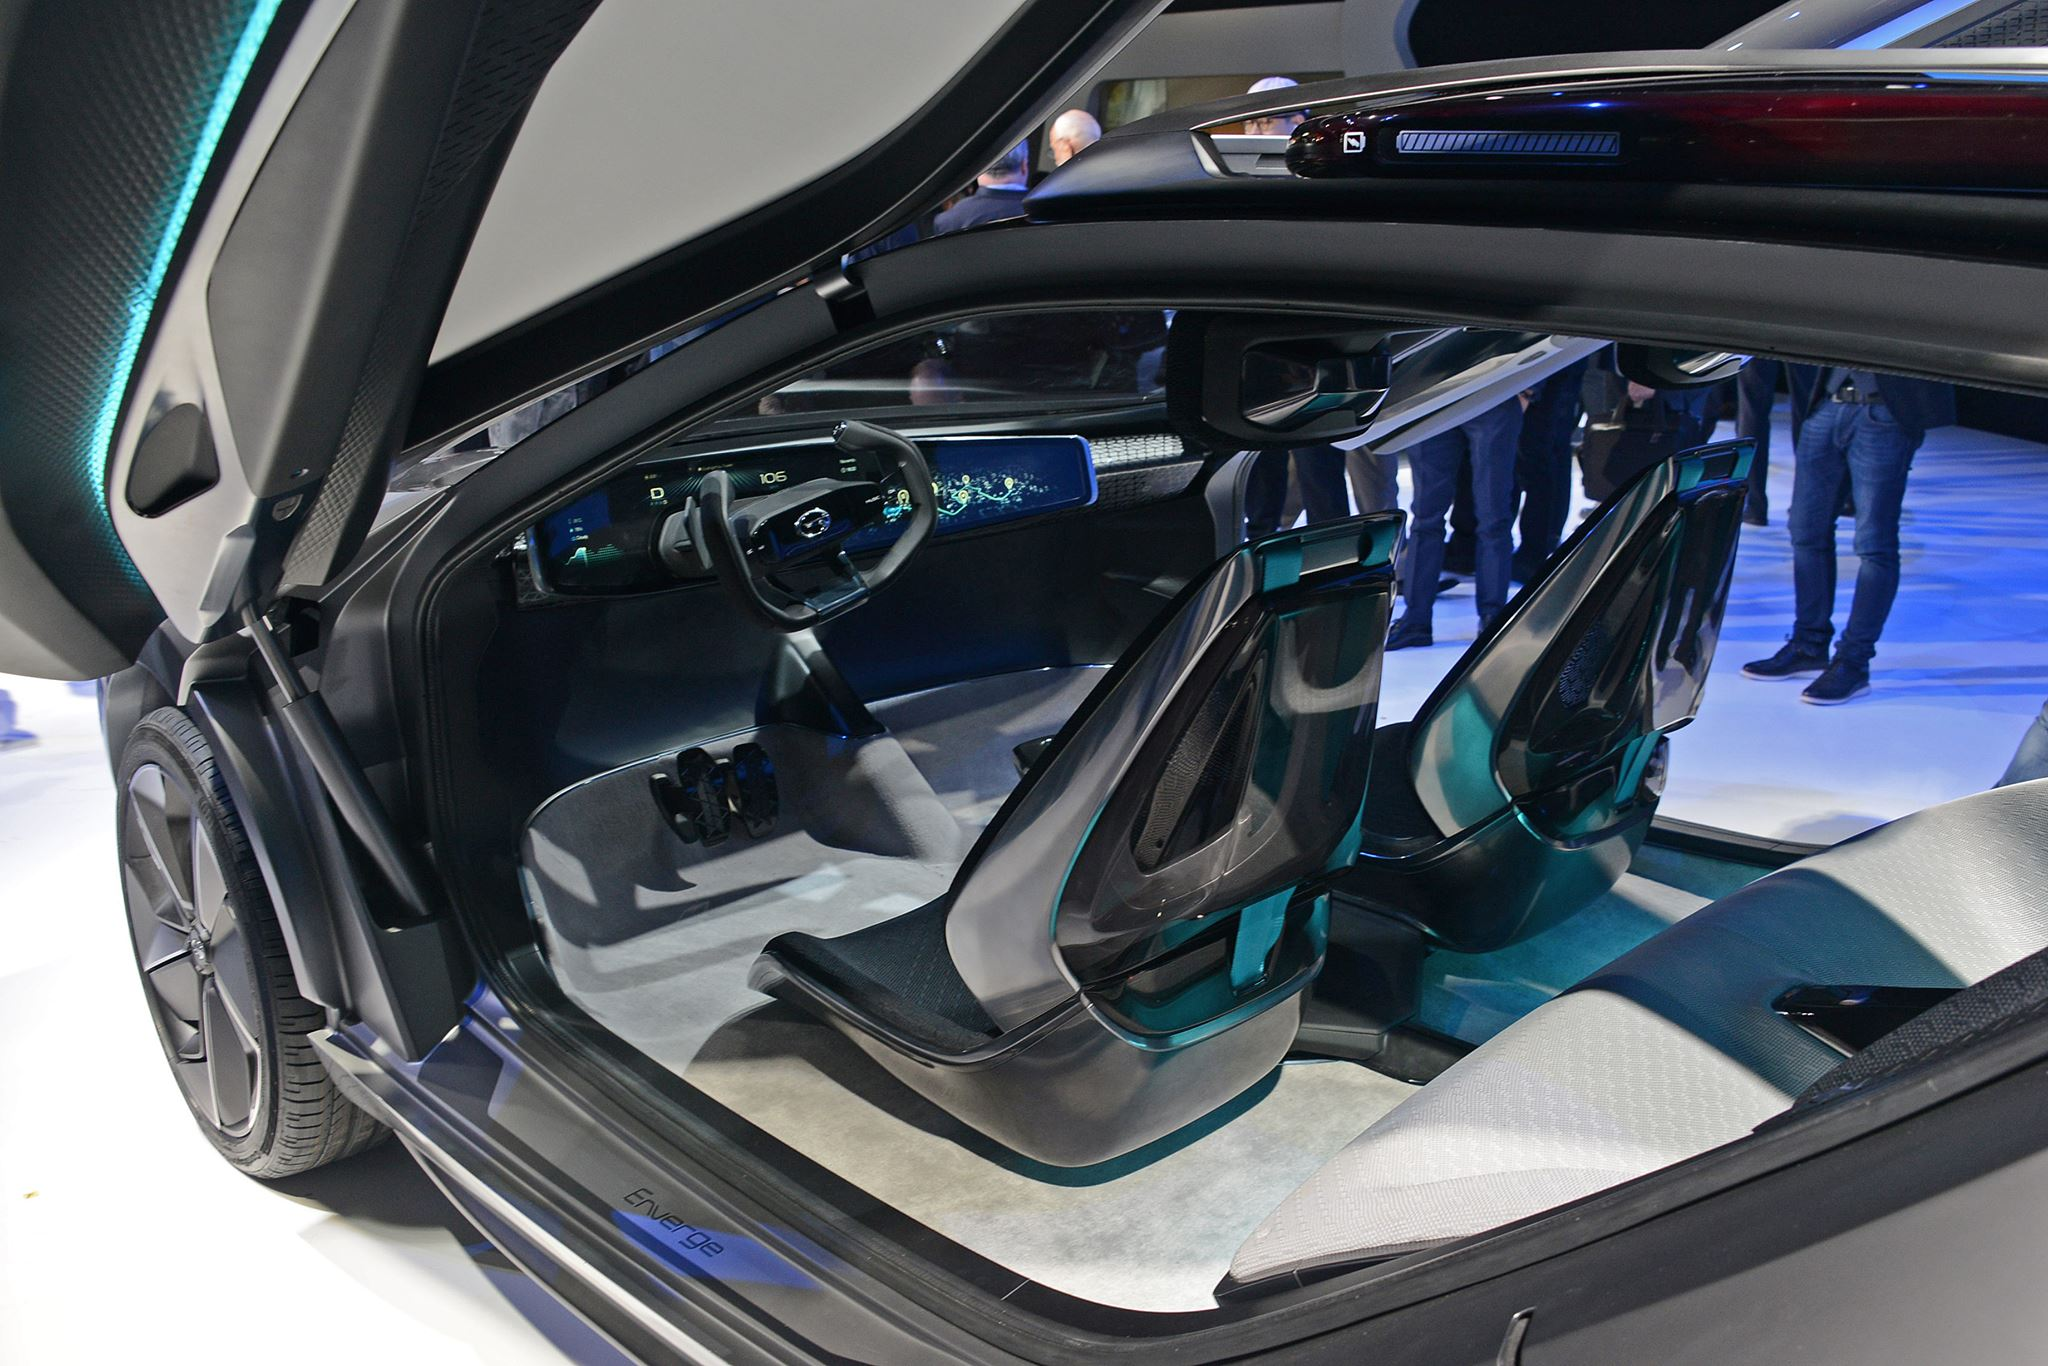 The weirdest quirks in concept cars at the Detroit Auto Show